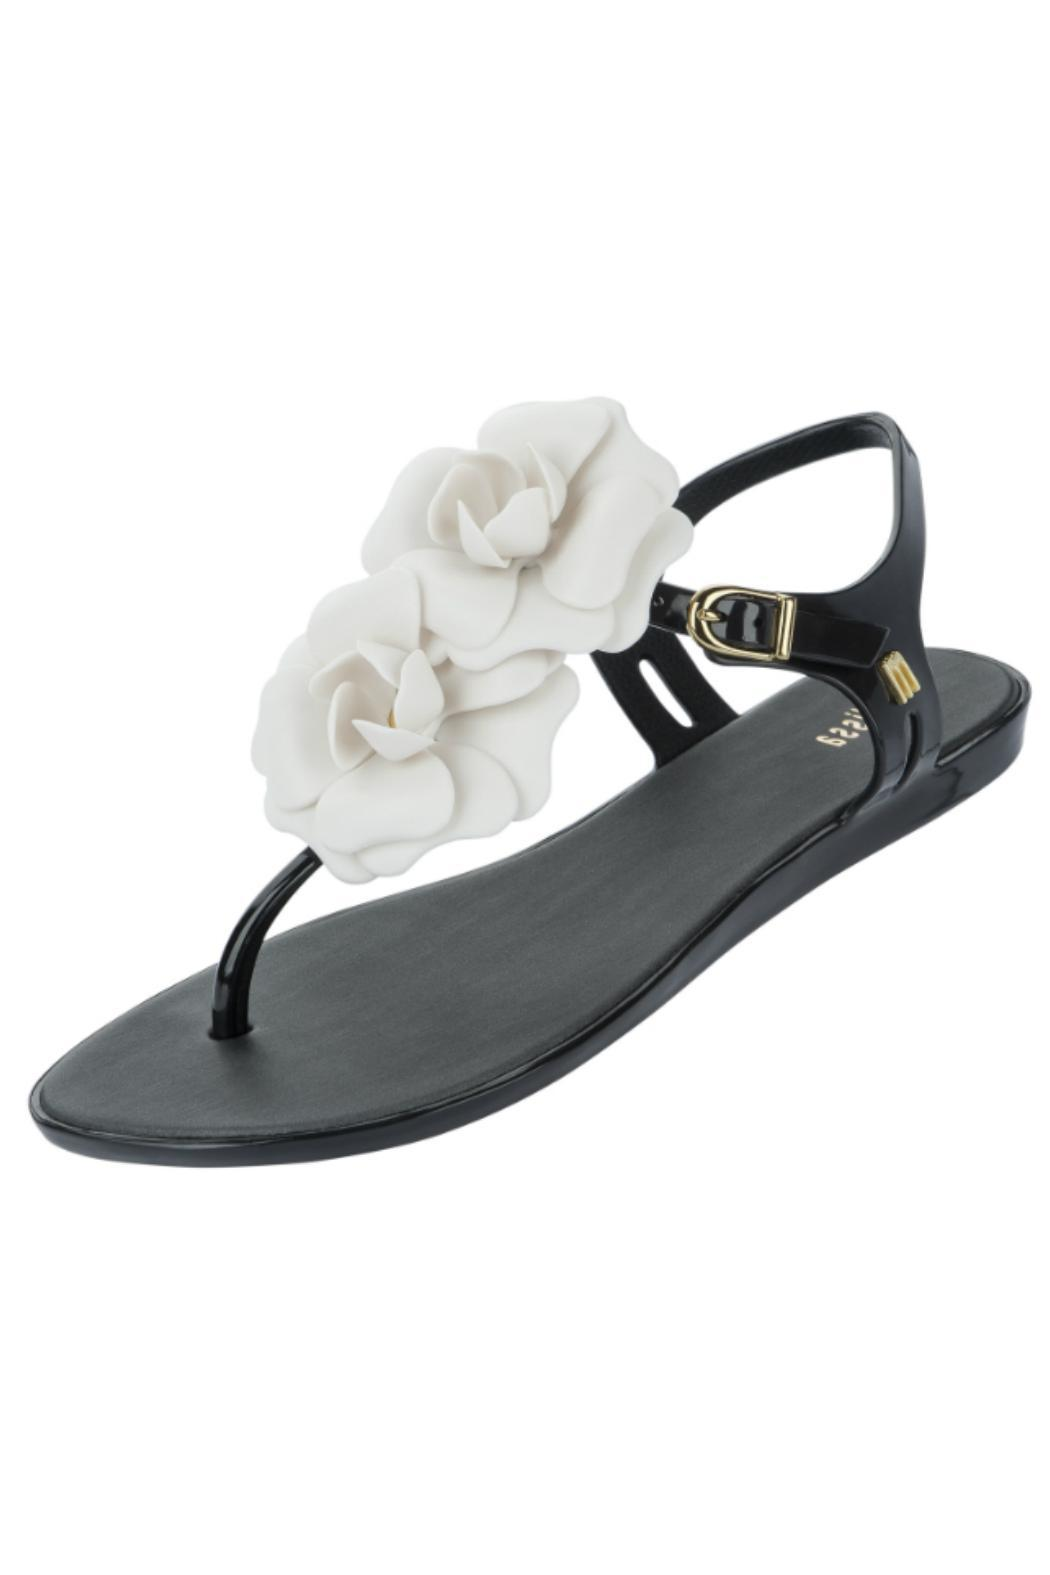 Melissa Solargarden Sandal From New Hampshire By Stiletto Shoes